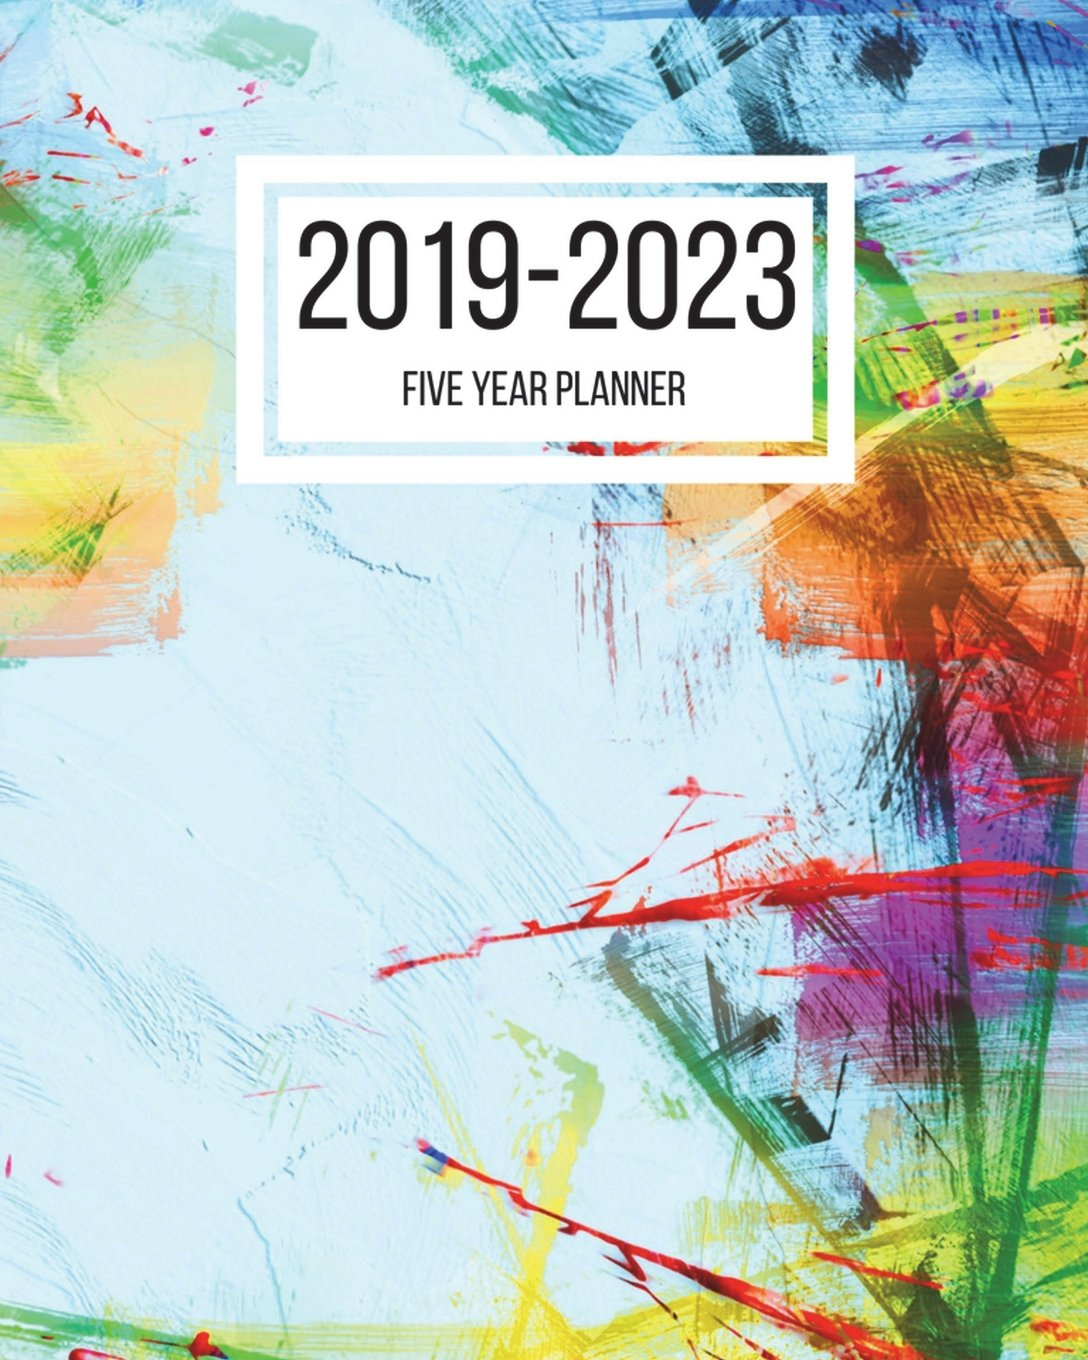 2019-2023 Five Year Planner: 60 Months Planner - 8 x 10 Inches - Paperback (2019-2023 planner) (Volume 50) PDF Text fb2 ebook